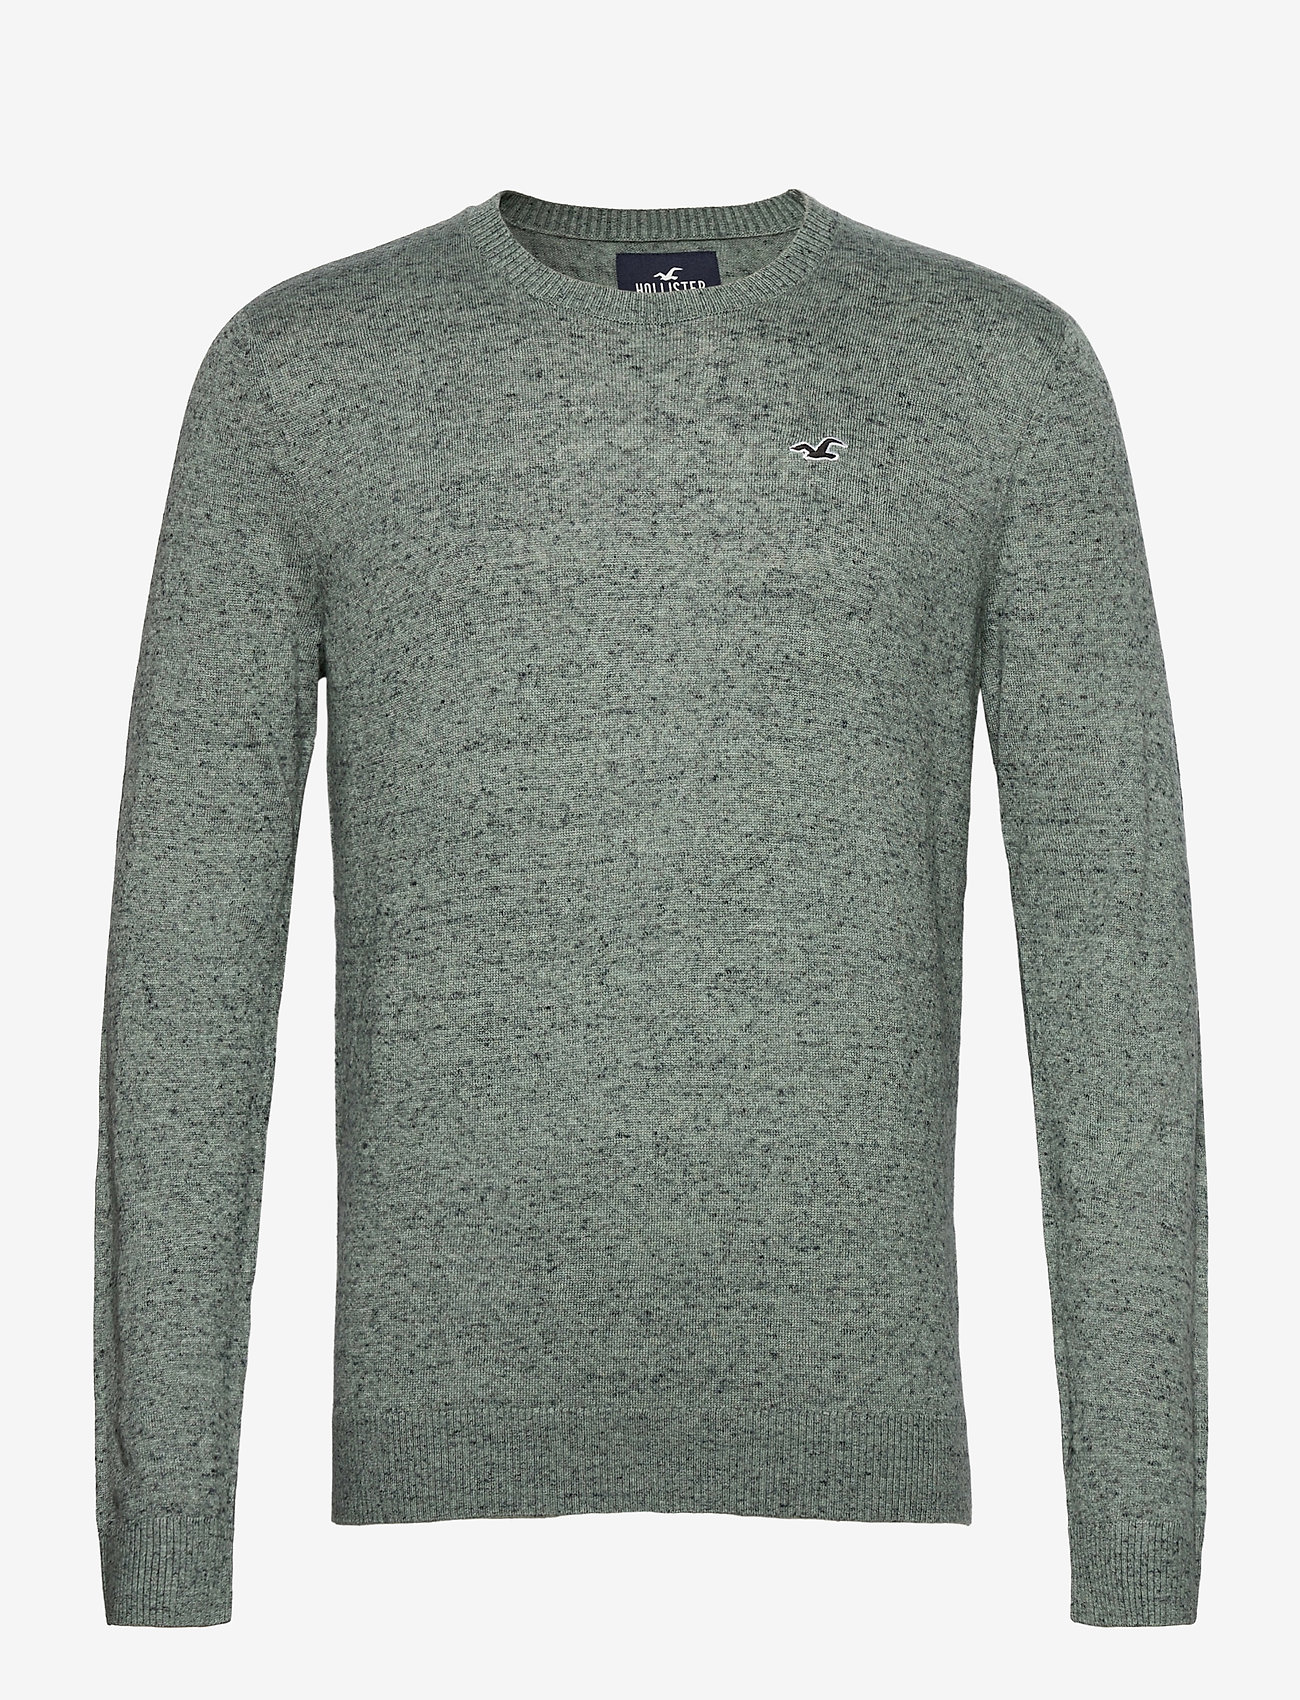 Hollister - HCo. GUYS SWEATERS - tricots basiques - green sd/texture - 0